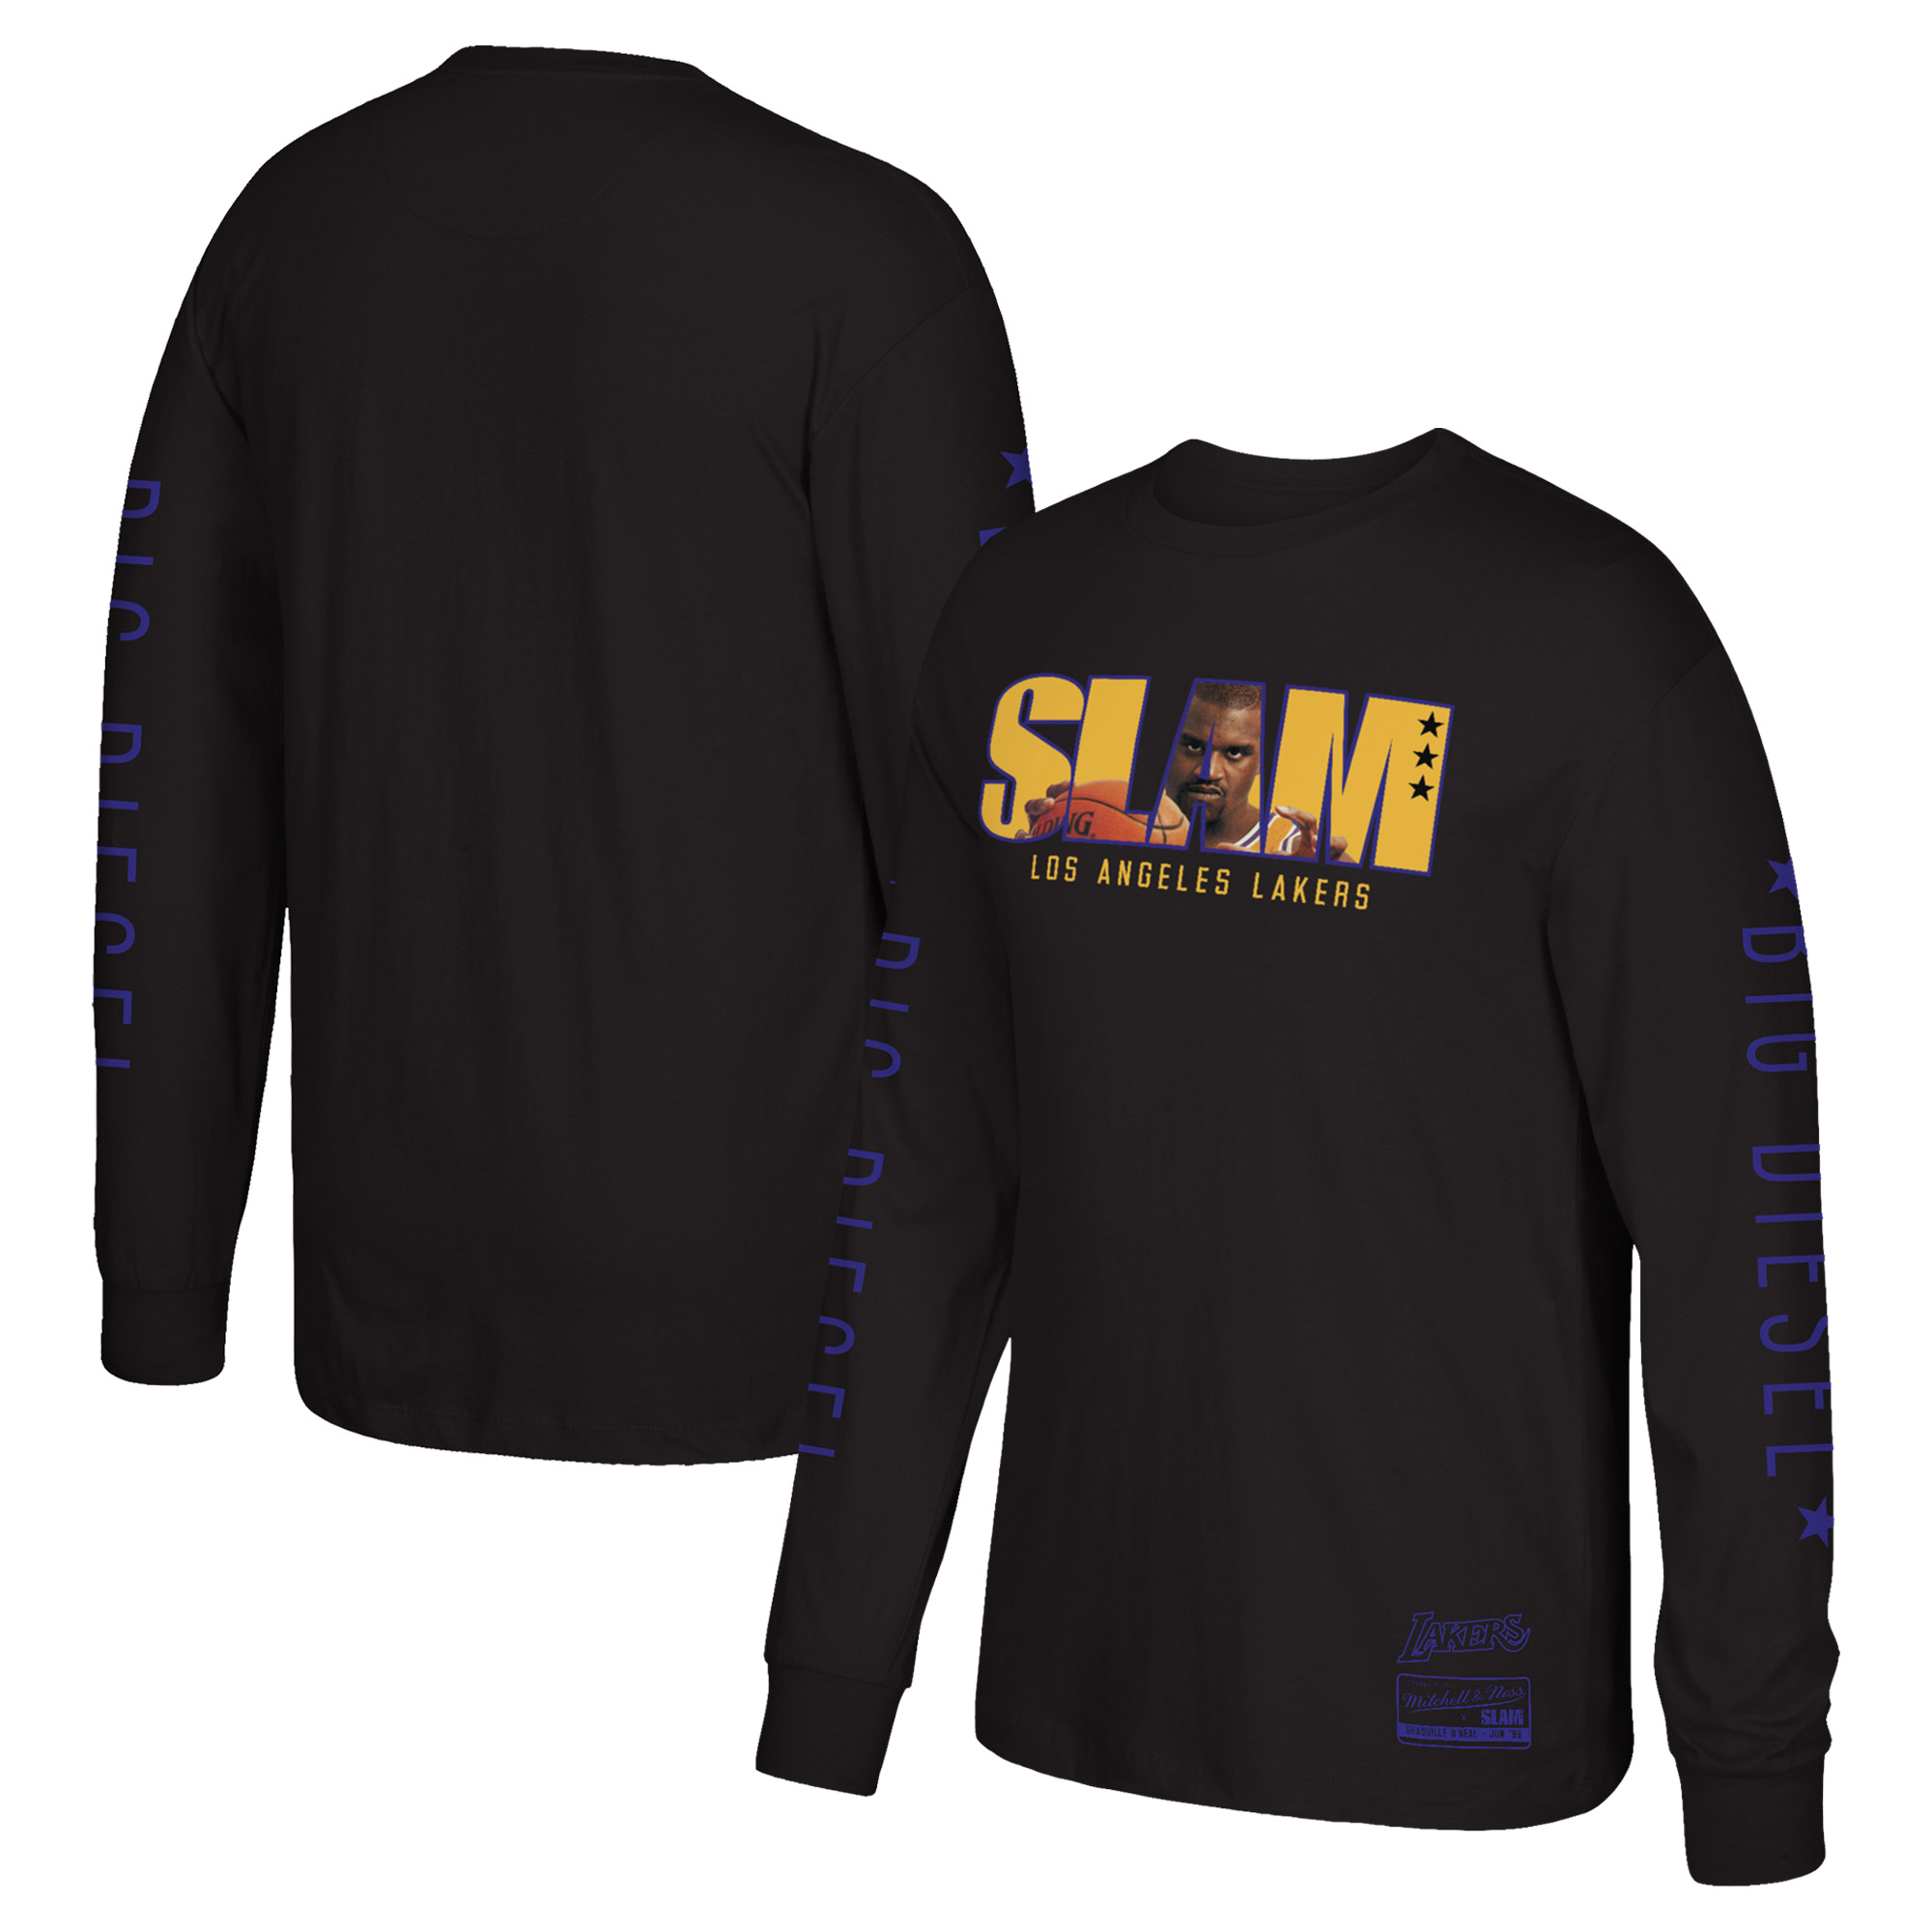 Shaquille O'Neal Los Angeles Lakers Mitchell & Ness Slam Long Sleeve T-Shirt - Black - S